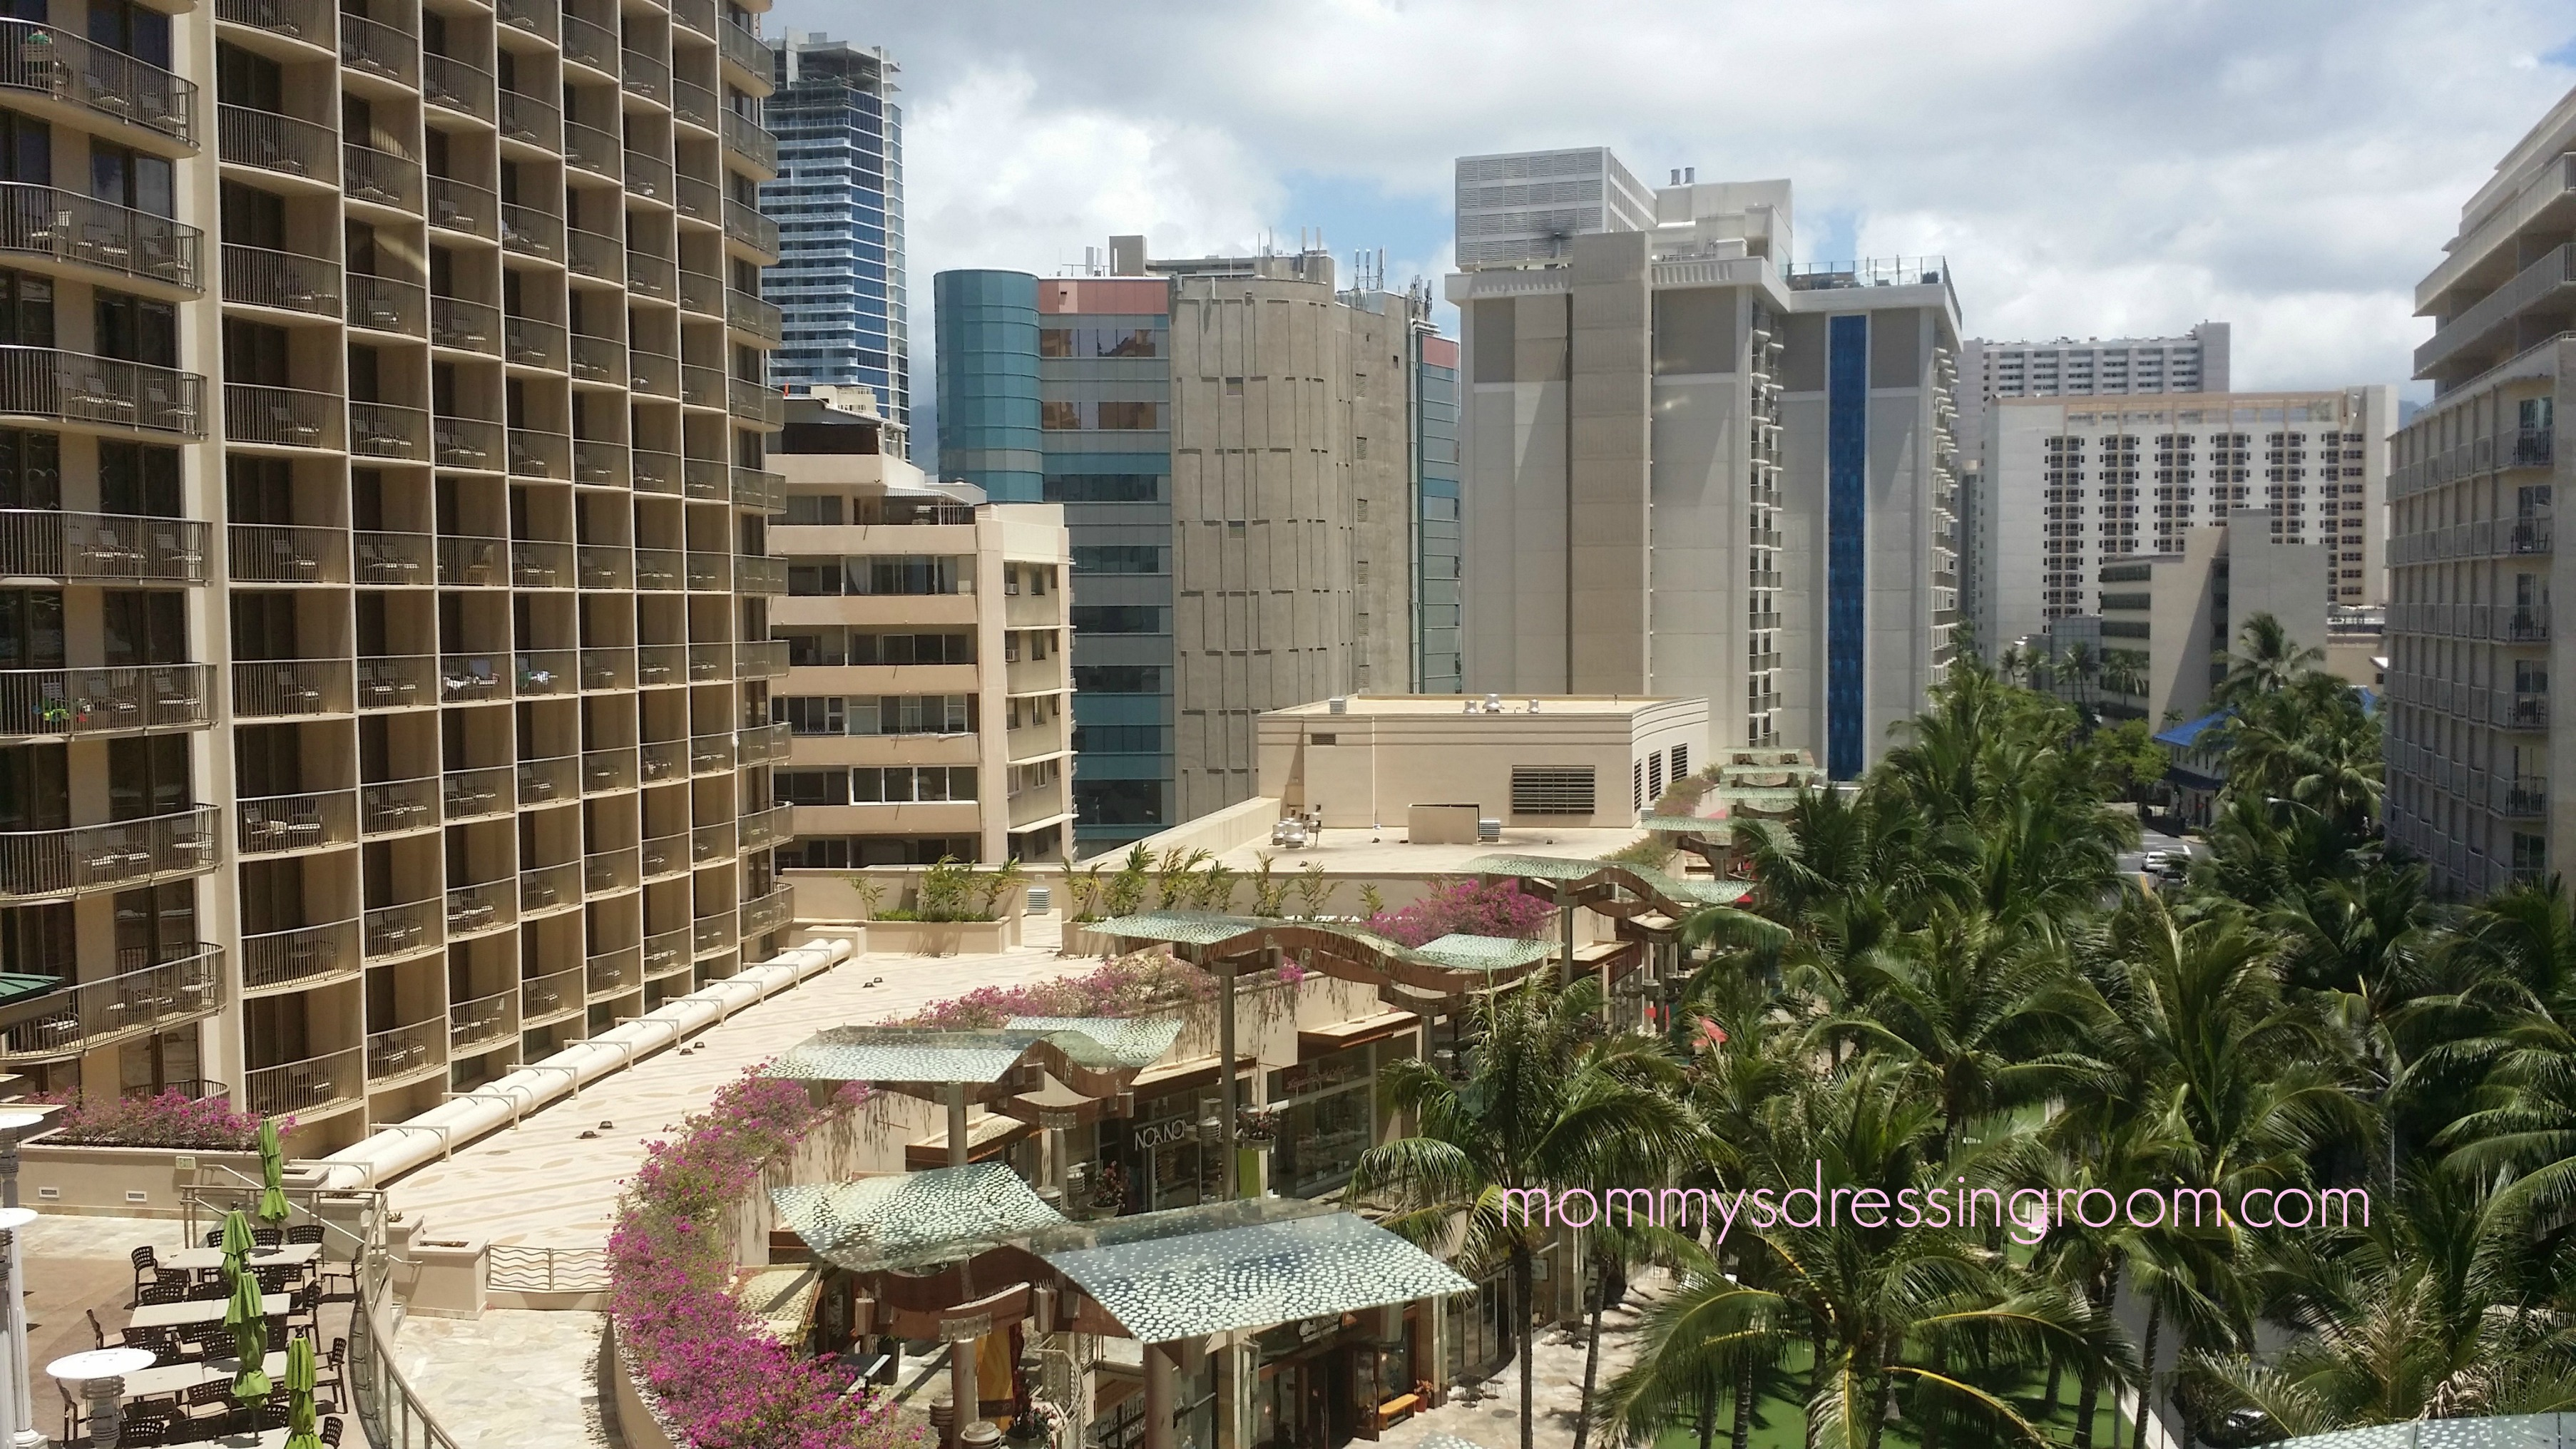 Our Stay at the Embassy Suites Waikiki (Bye, Bye Hawaii)